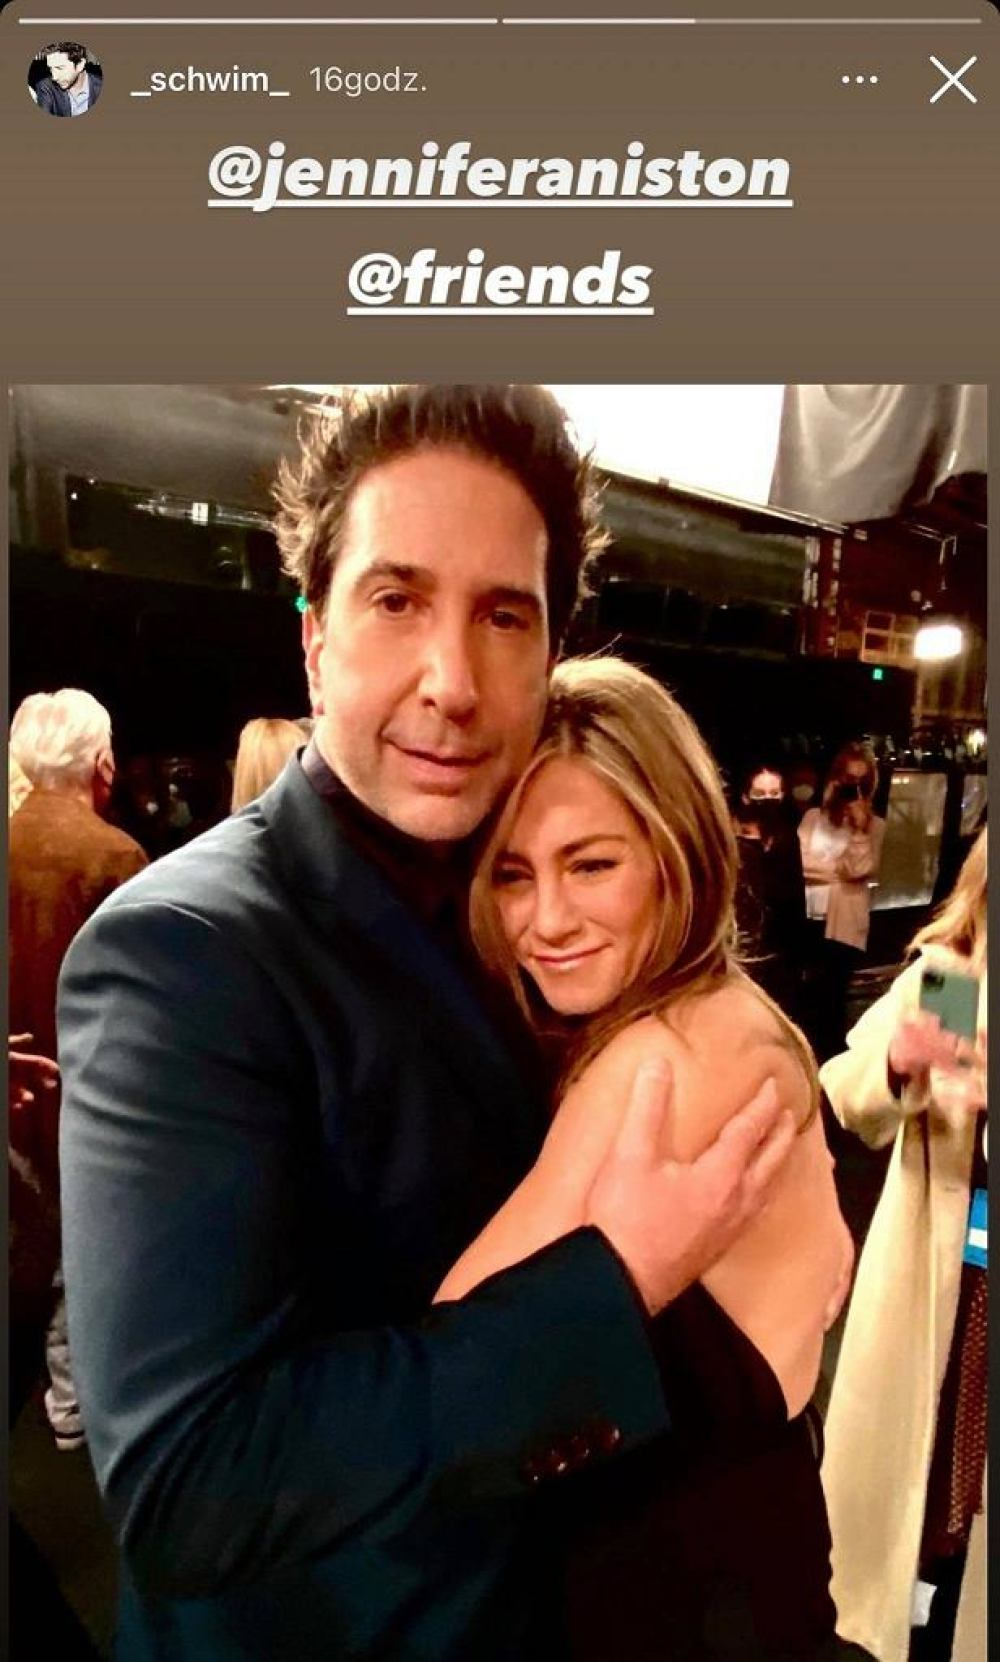 David Schwimmer and Jennifer Aniston are a couple?